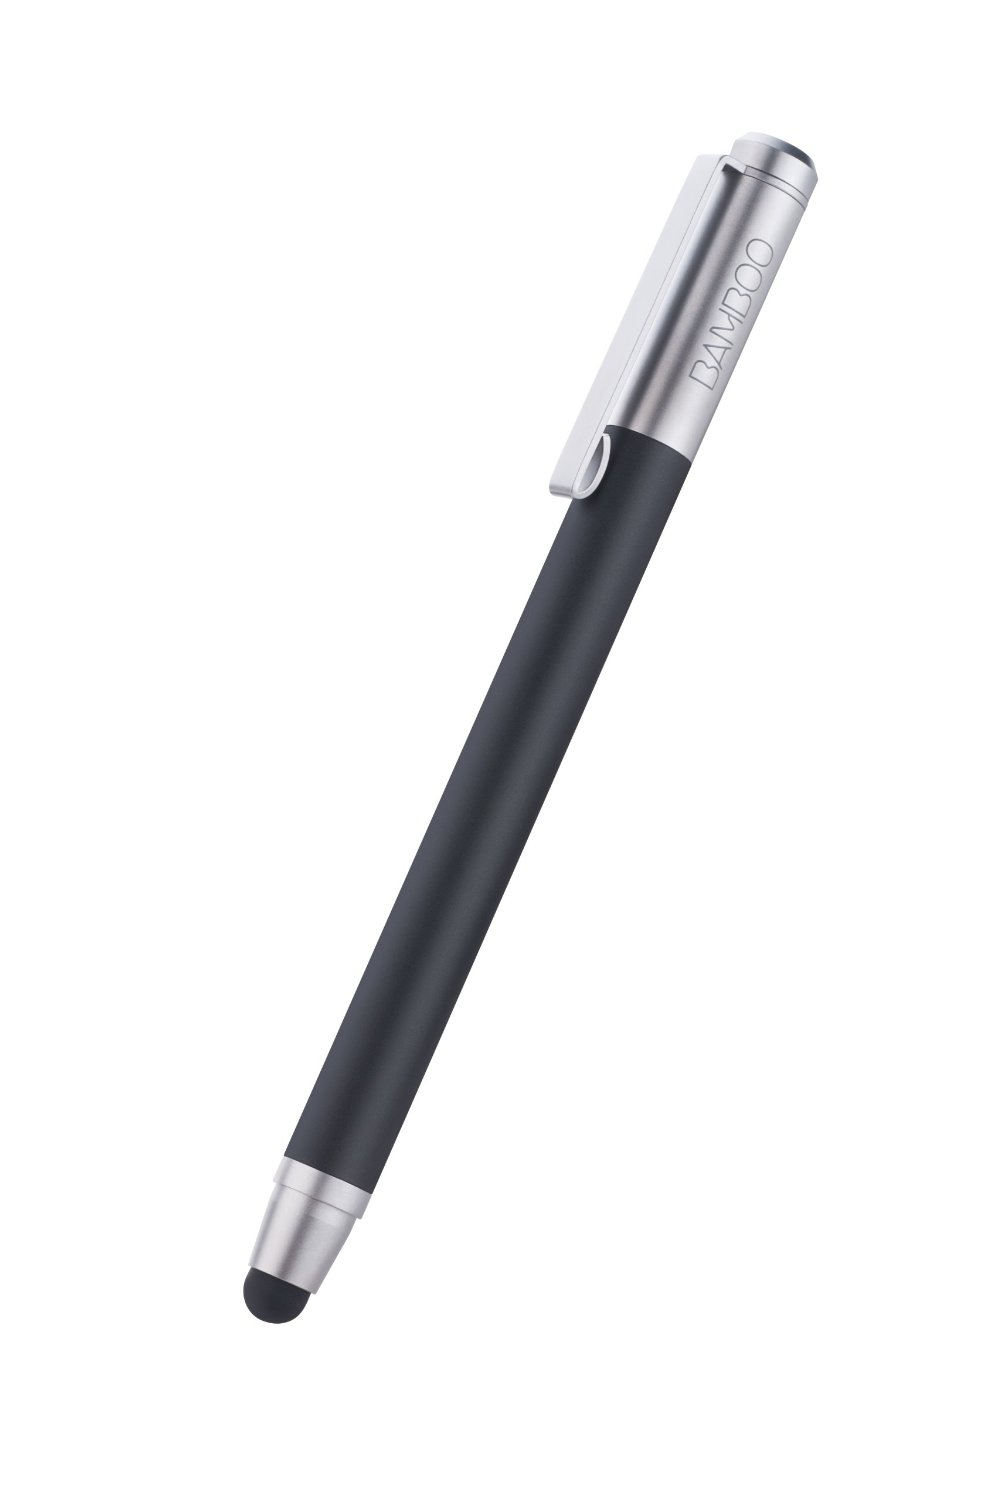 wacom_bamboo_stylus_ipad_air